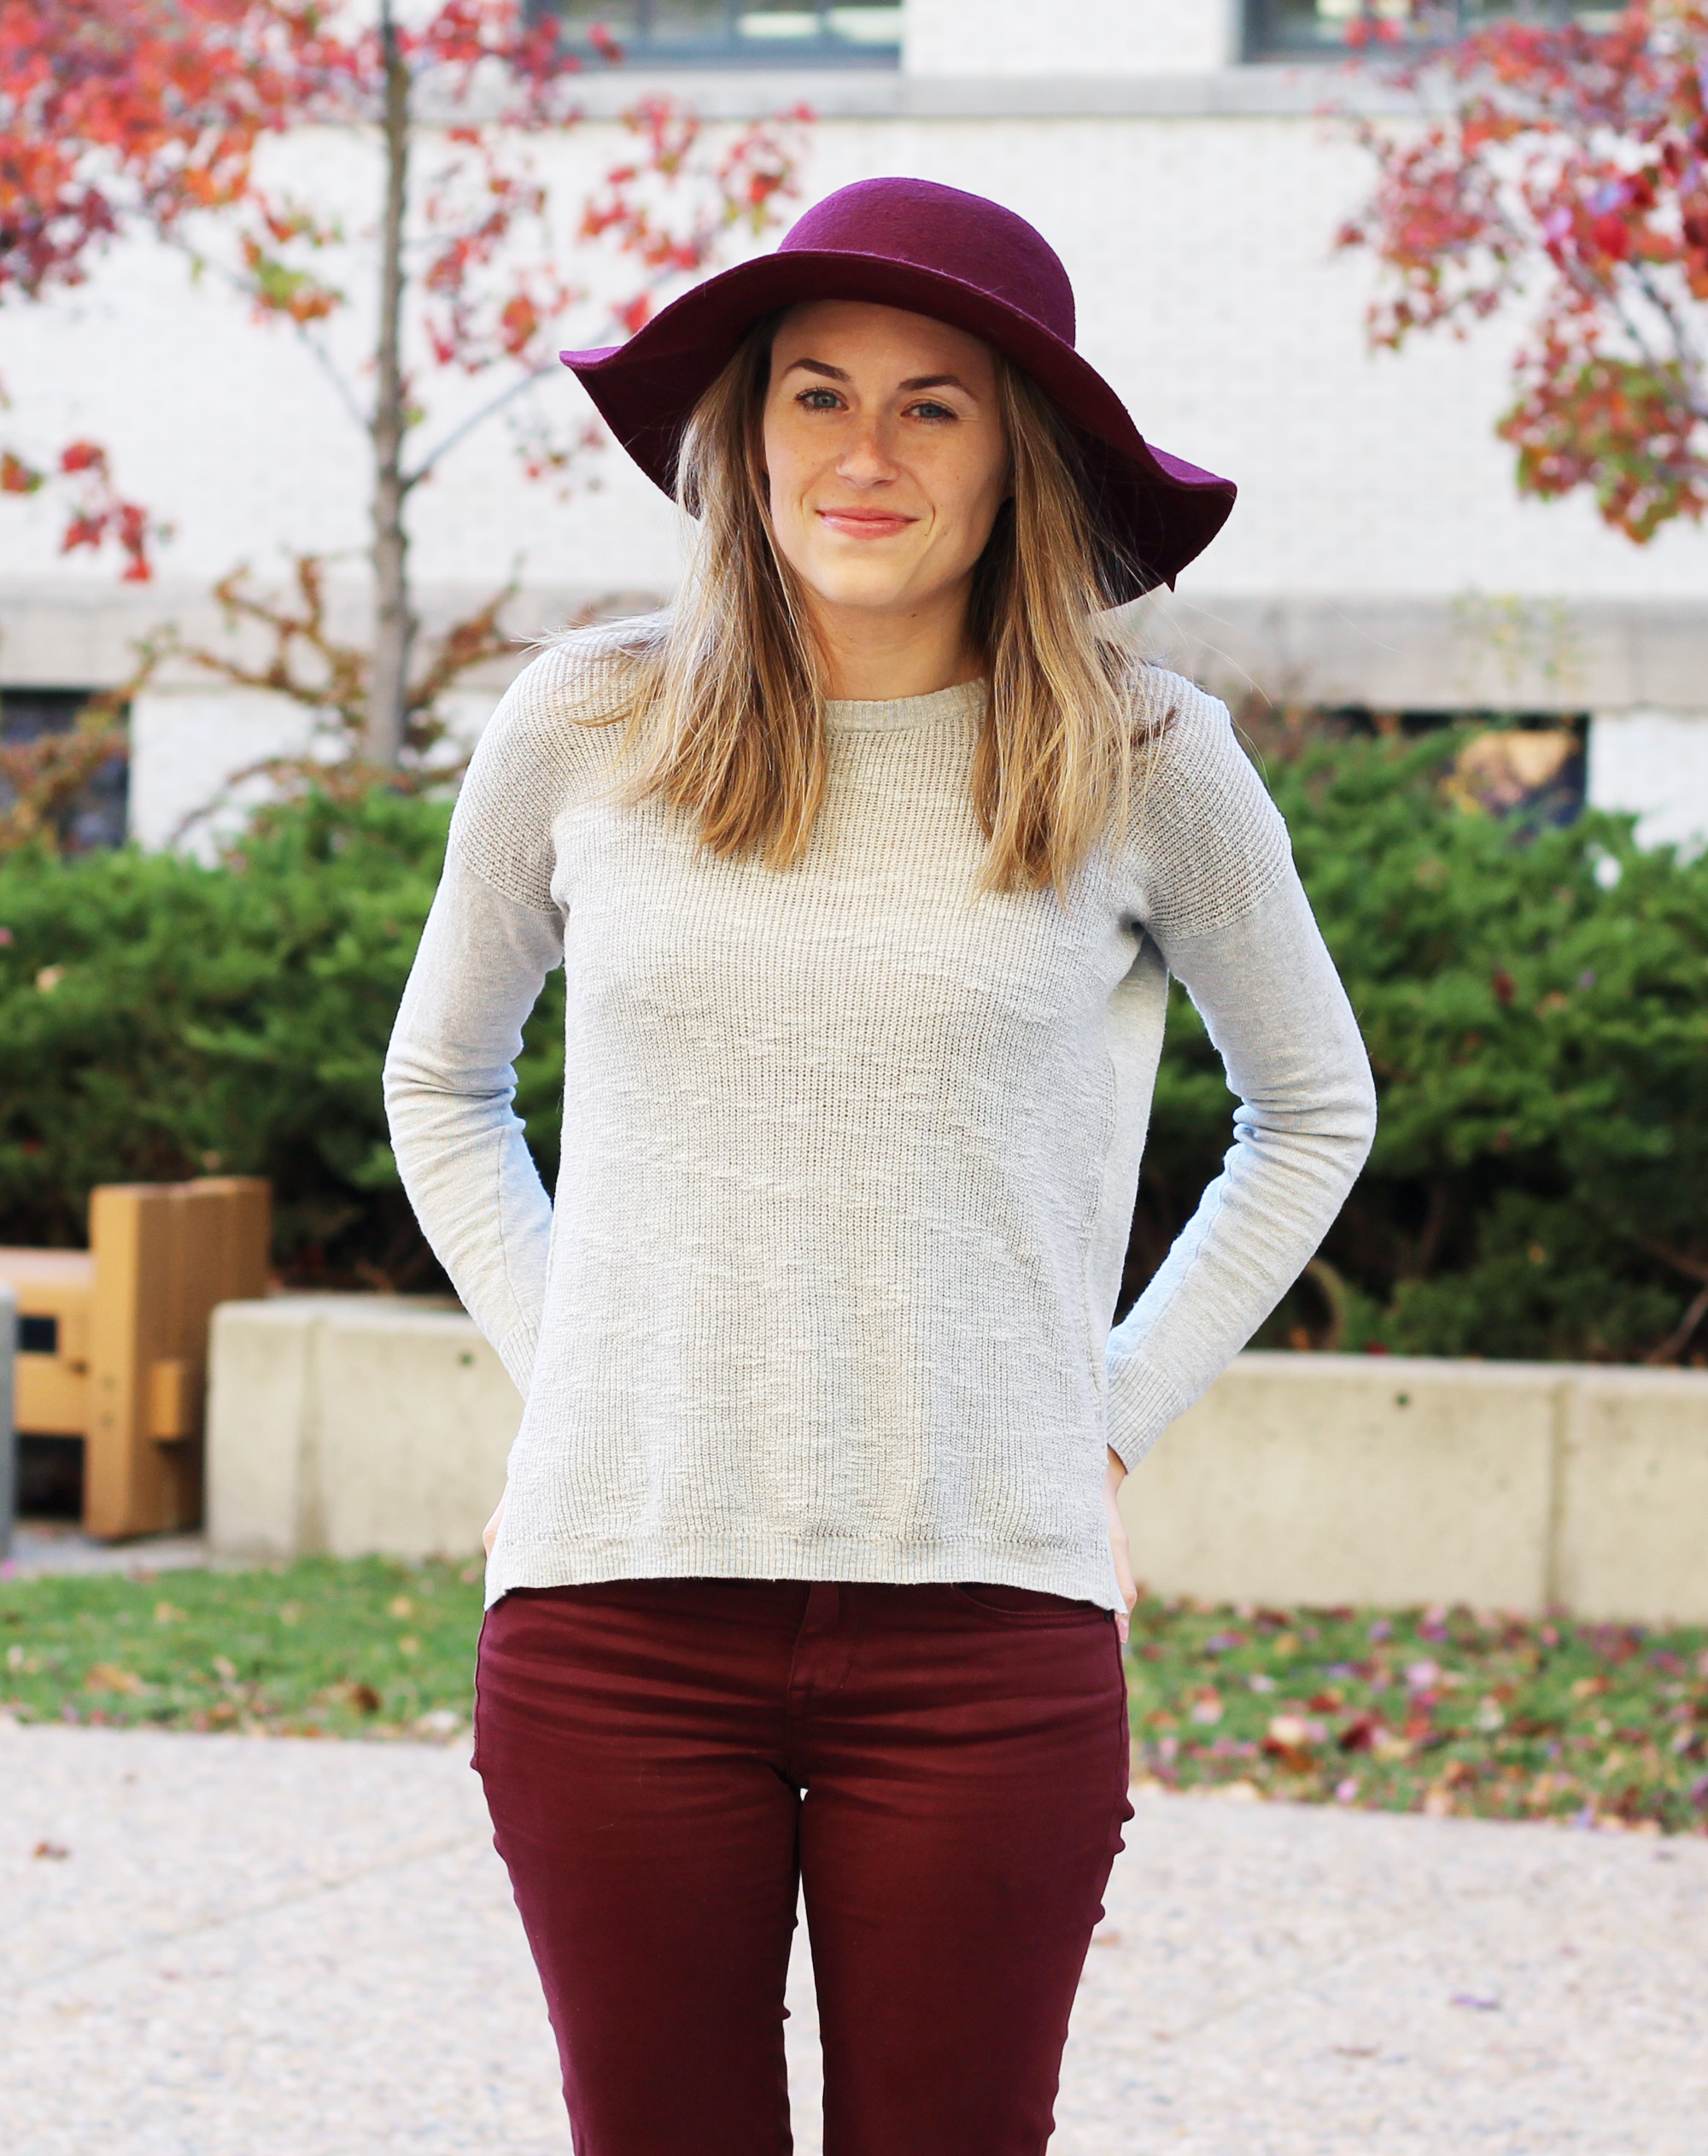 Burgundy floppy hat, grey sweater, burgundy pants — Cotton Cashmere Cat Hair